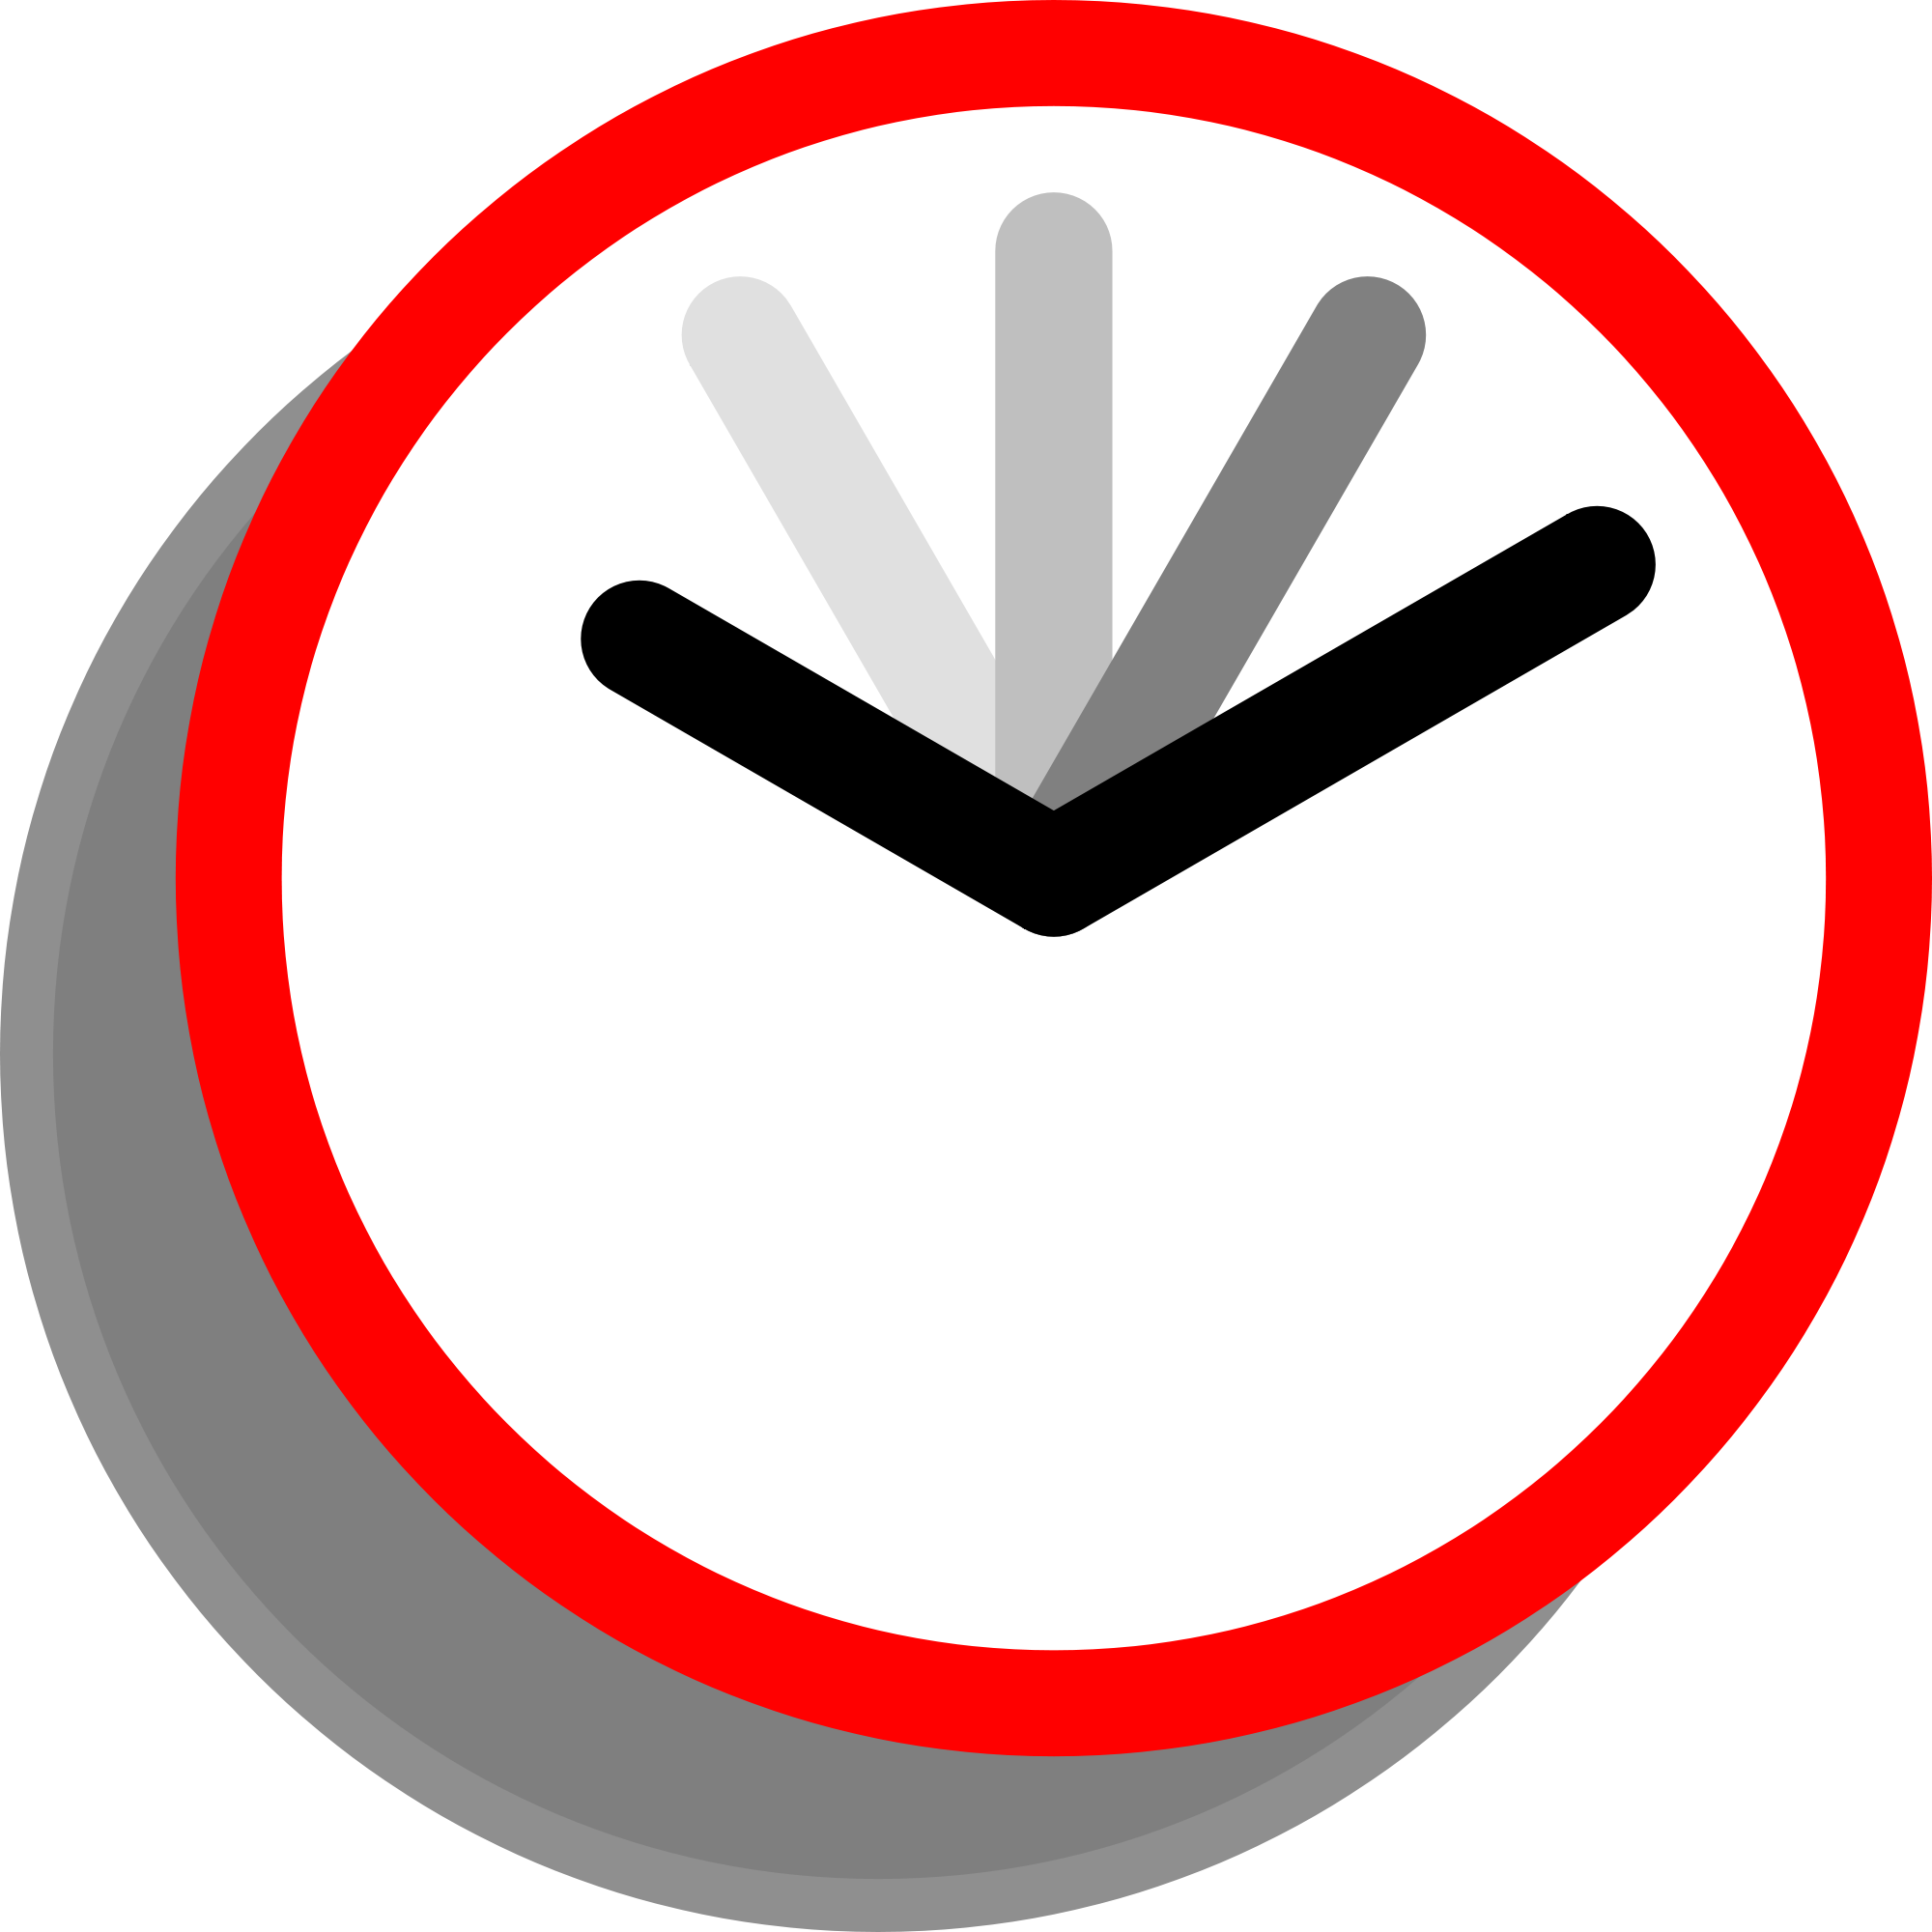 Future clipart svg. File current event clock